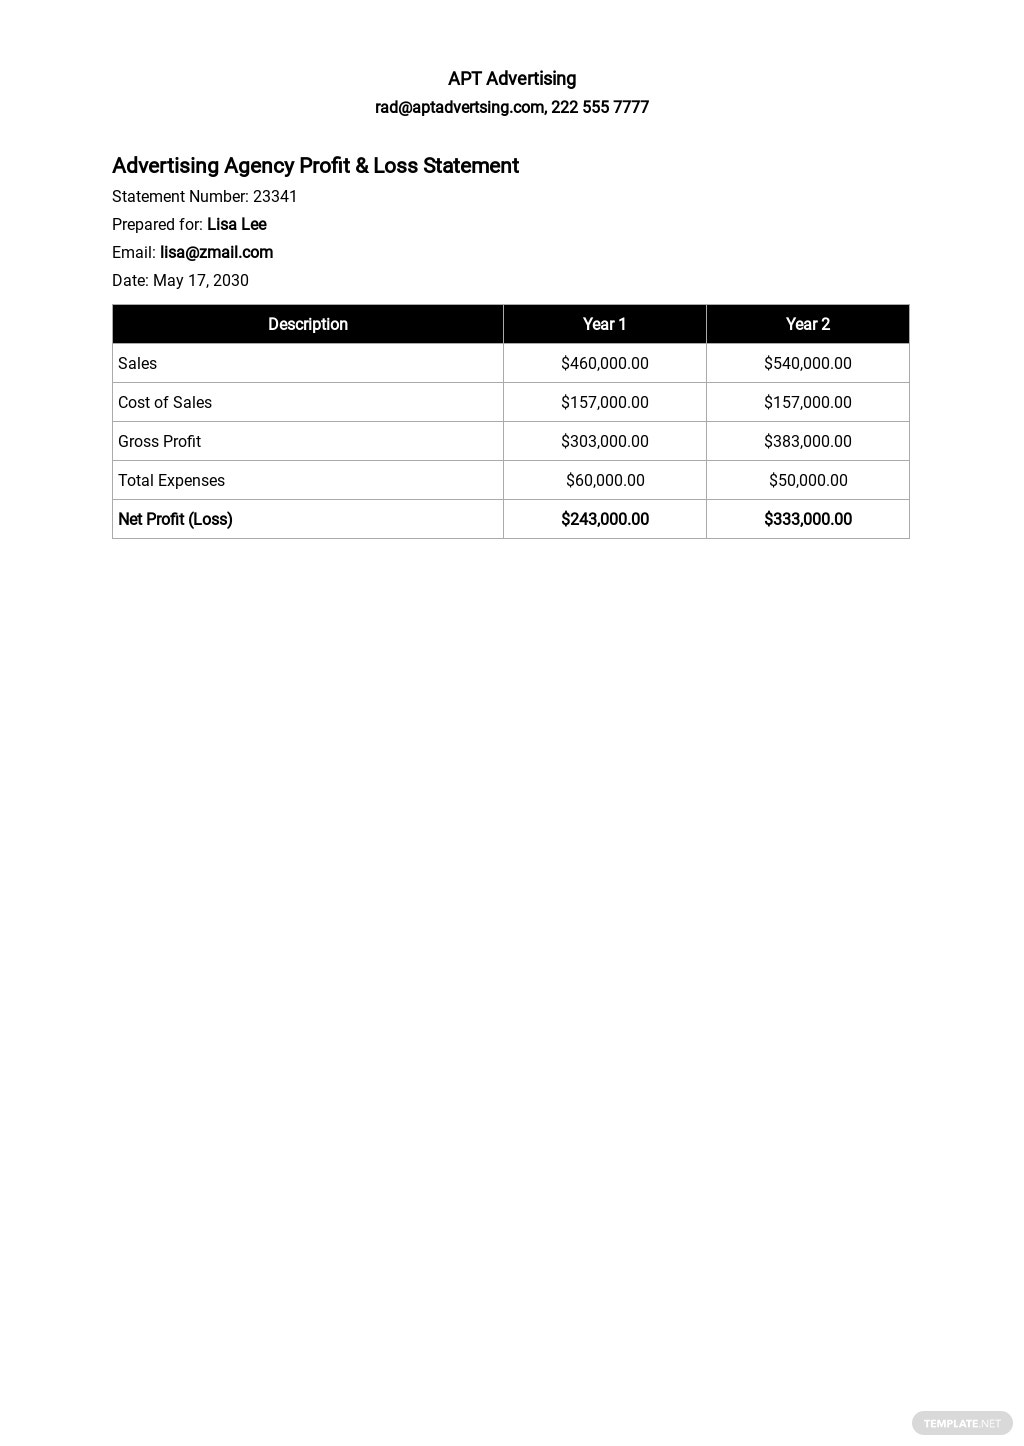 Advertising Agency Profit and Loss Statement Template